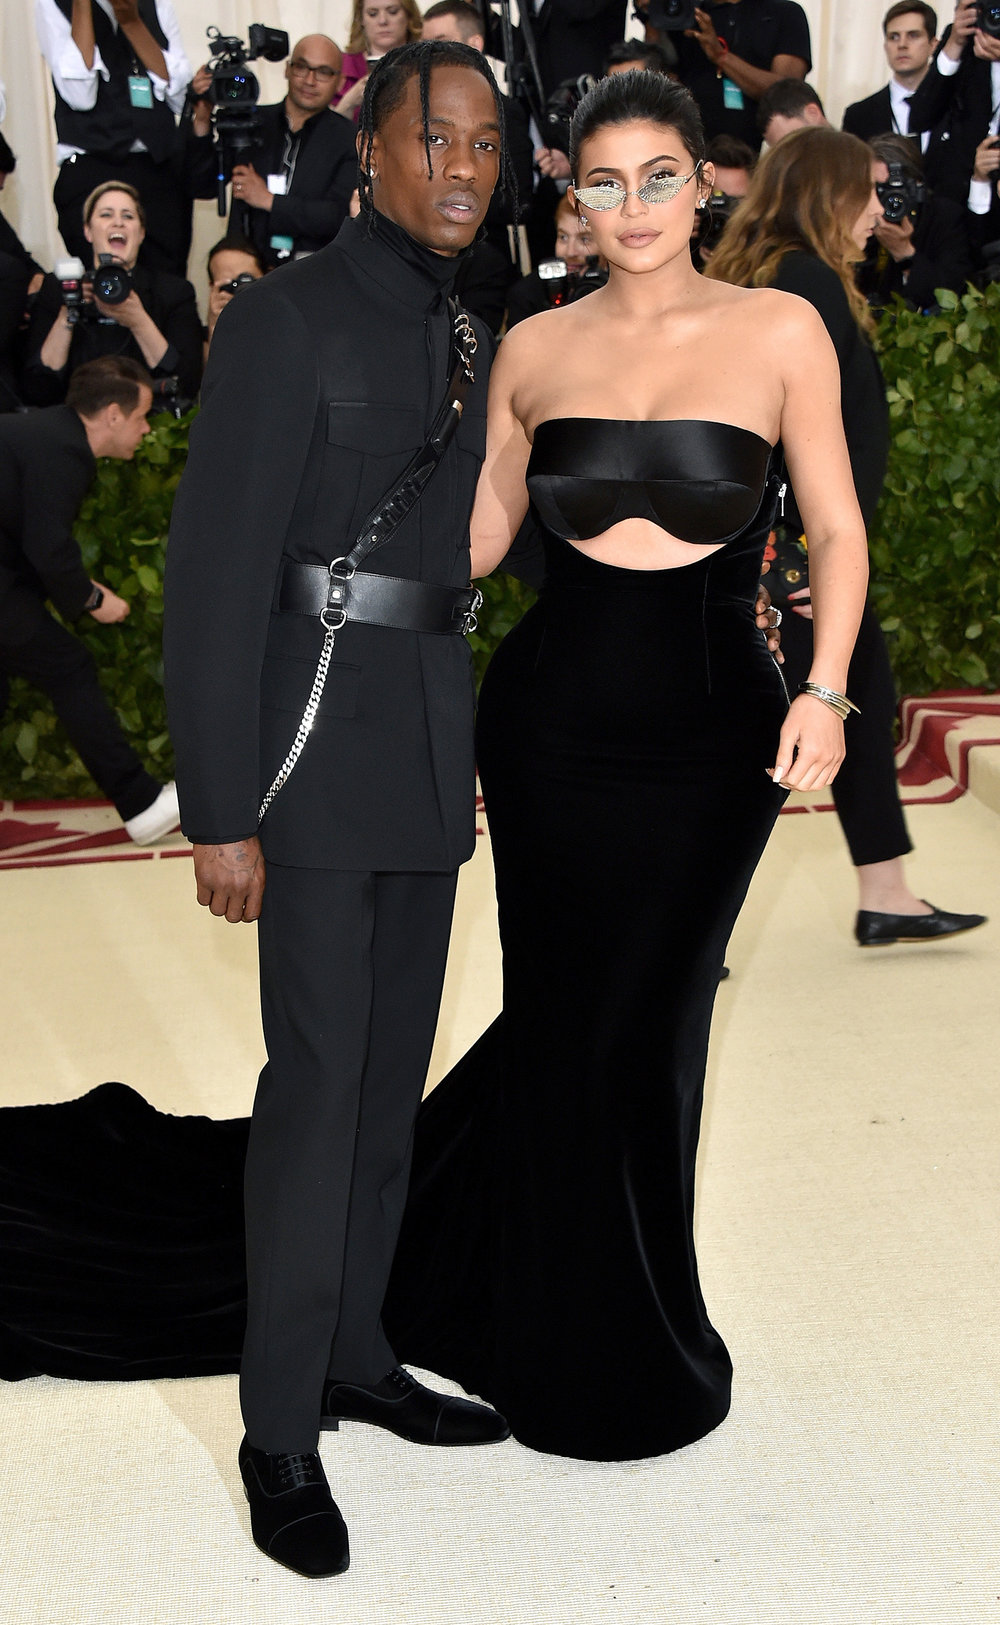 12. TRAVIS SCOTT & KYLIE JENNER